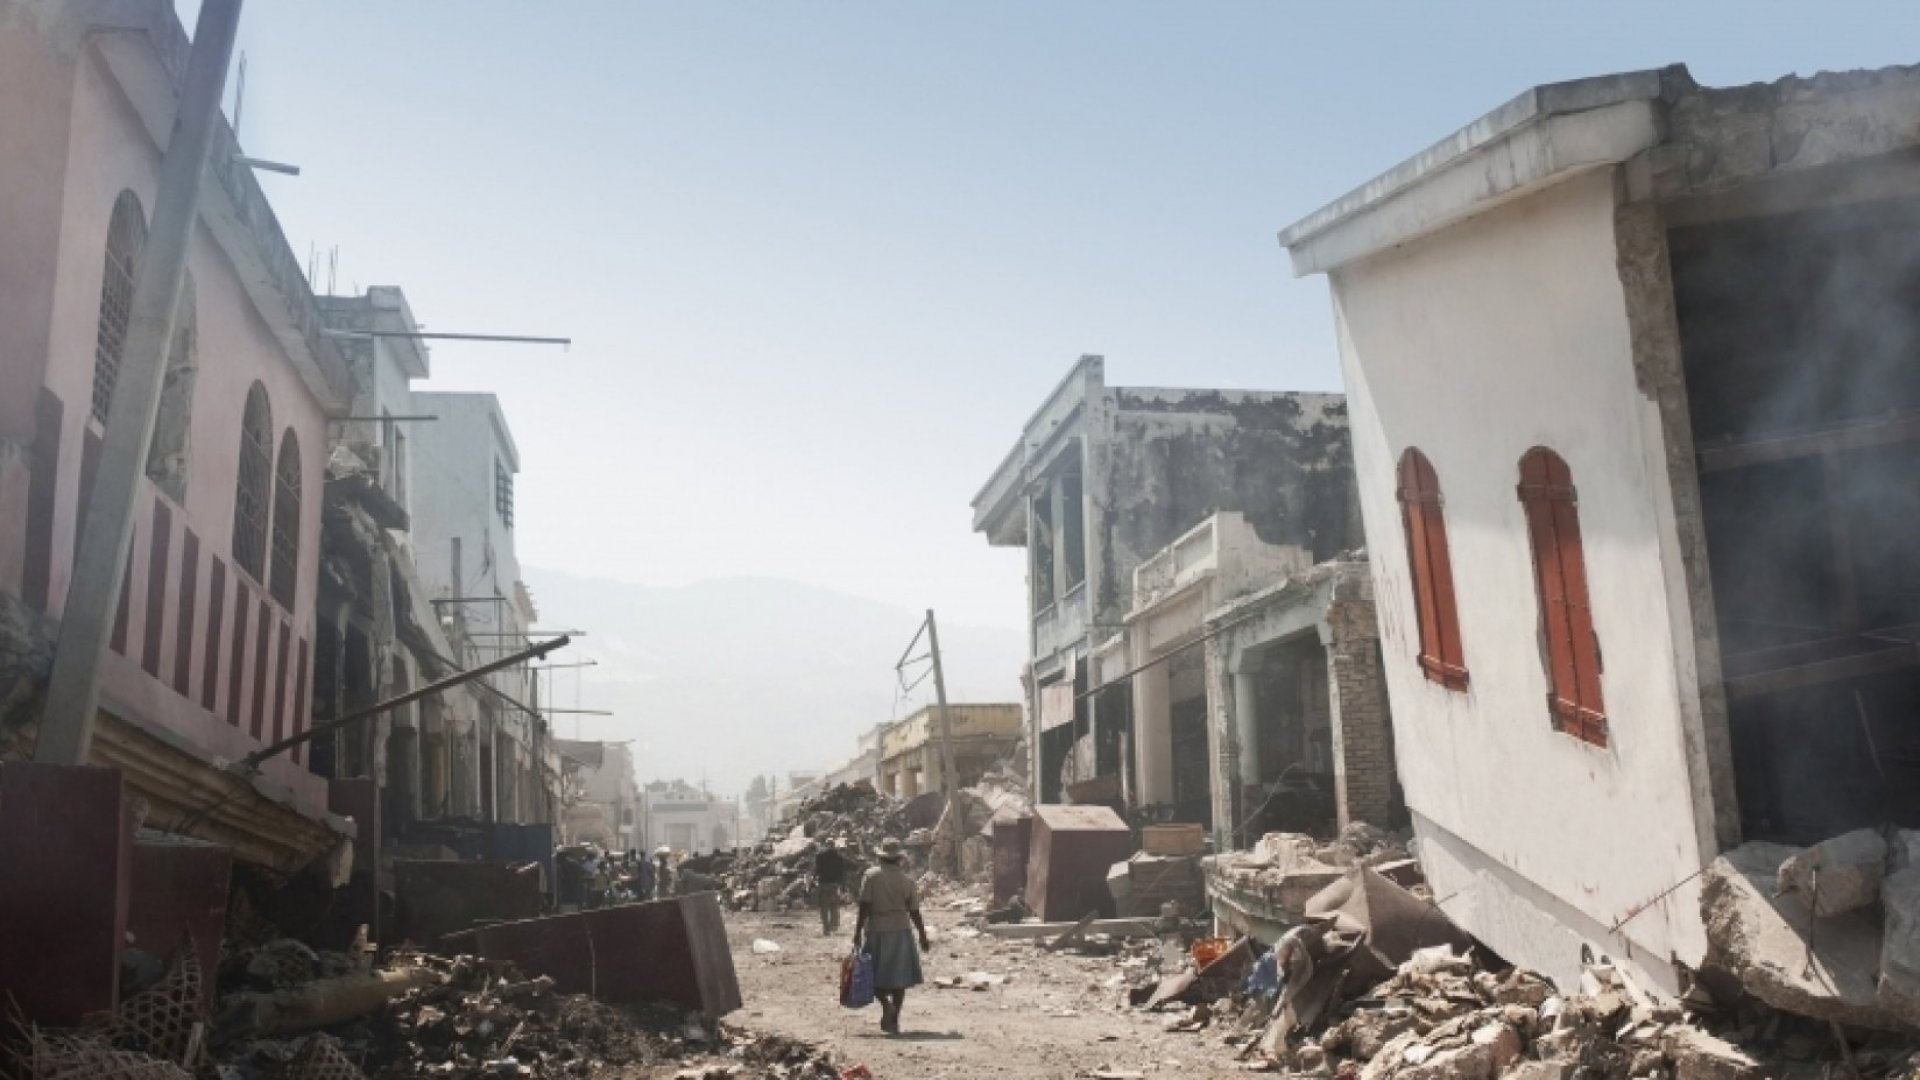 What to Expect When Starting a Social Business in a Disaster Area